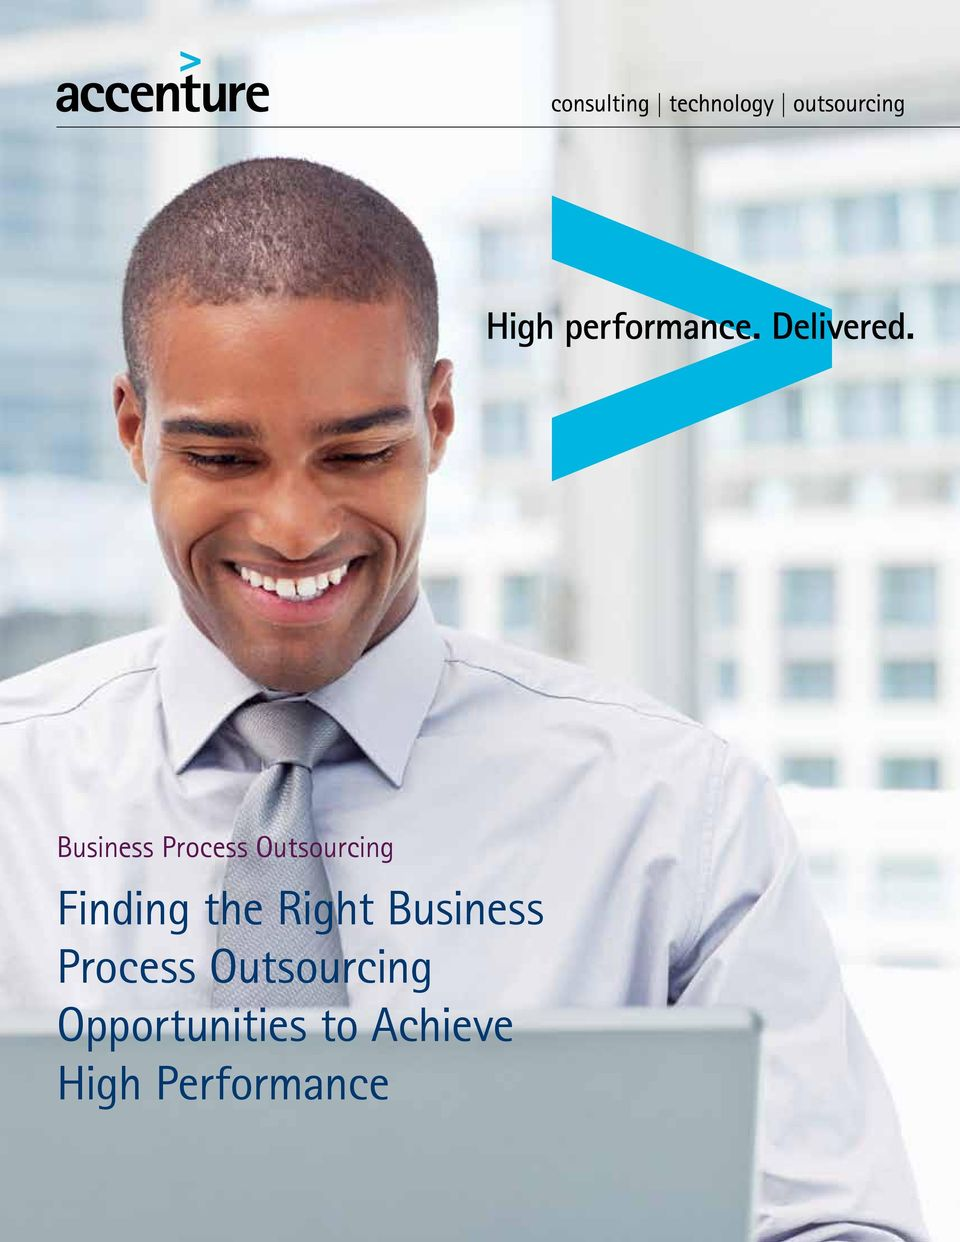 Opportunities to Achieve High